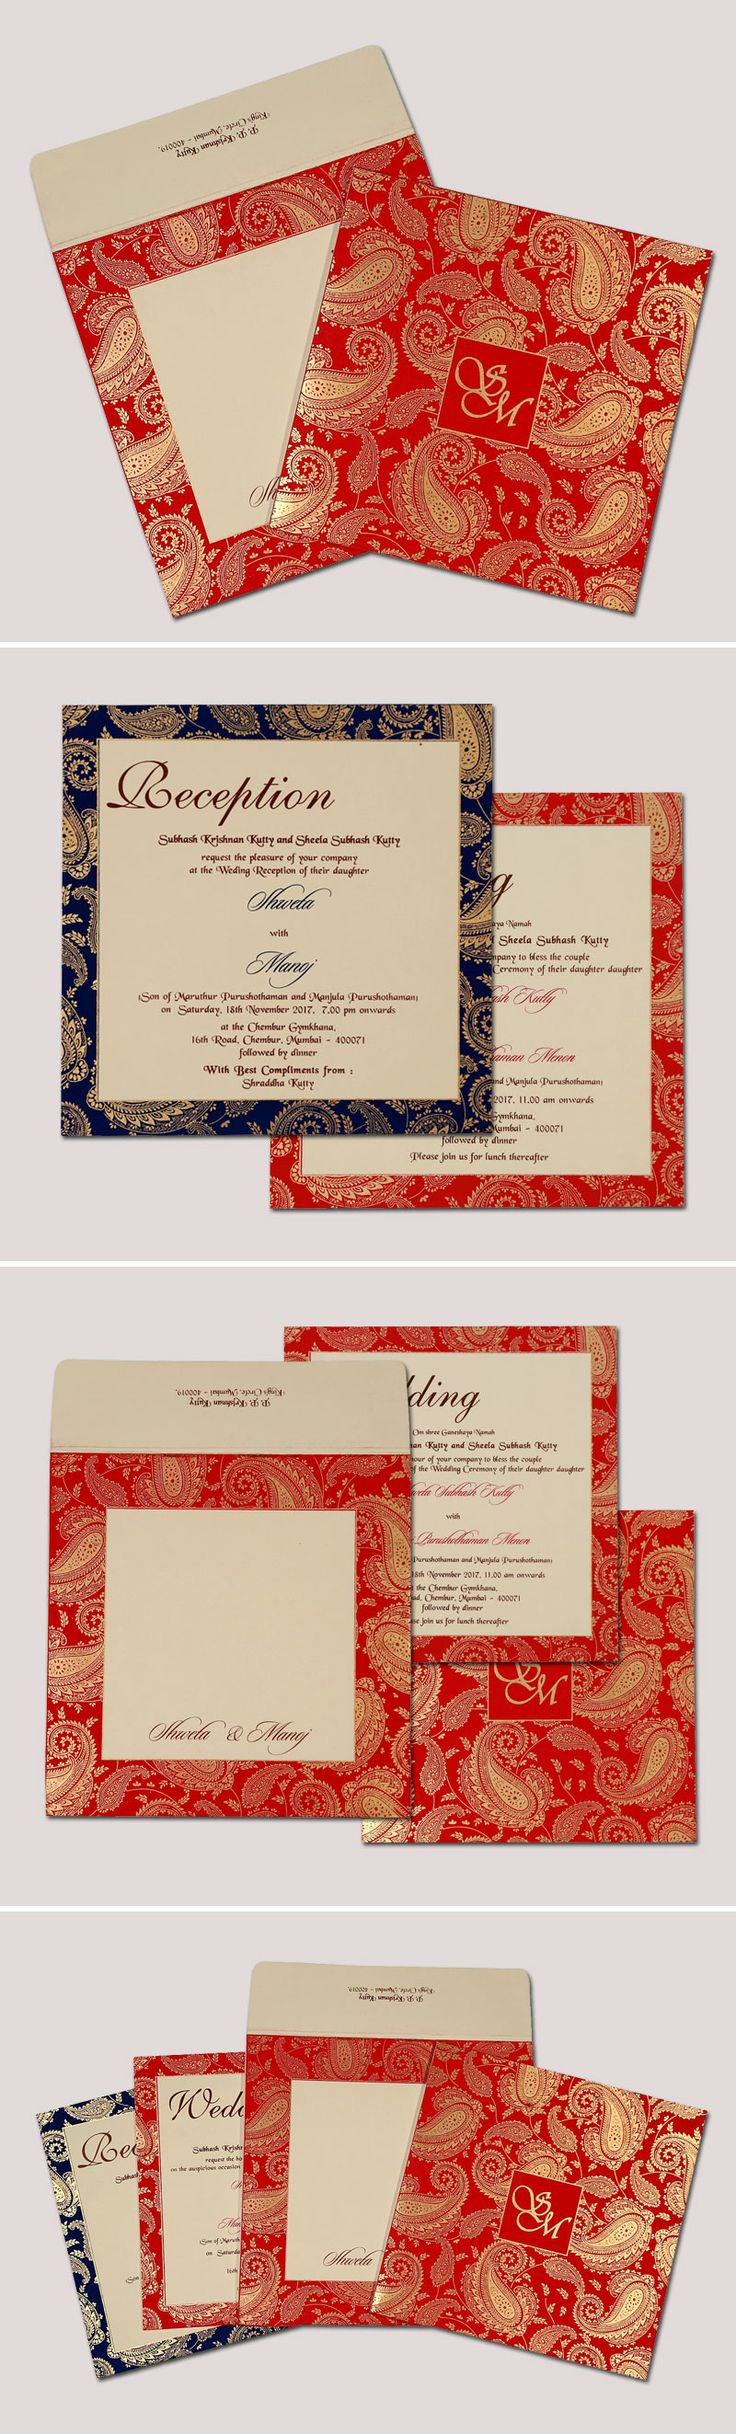 8 best Delightful South Indian Wedding Invitations images on ...